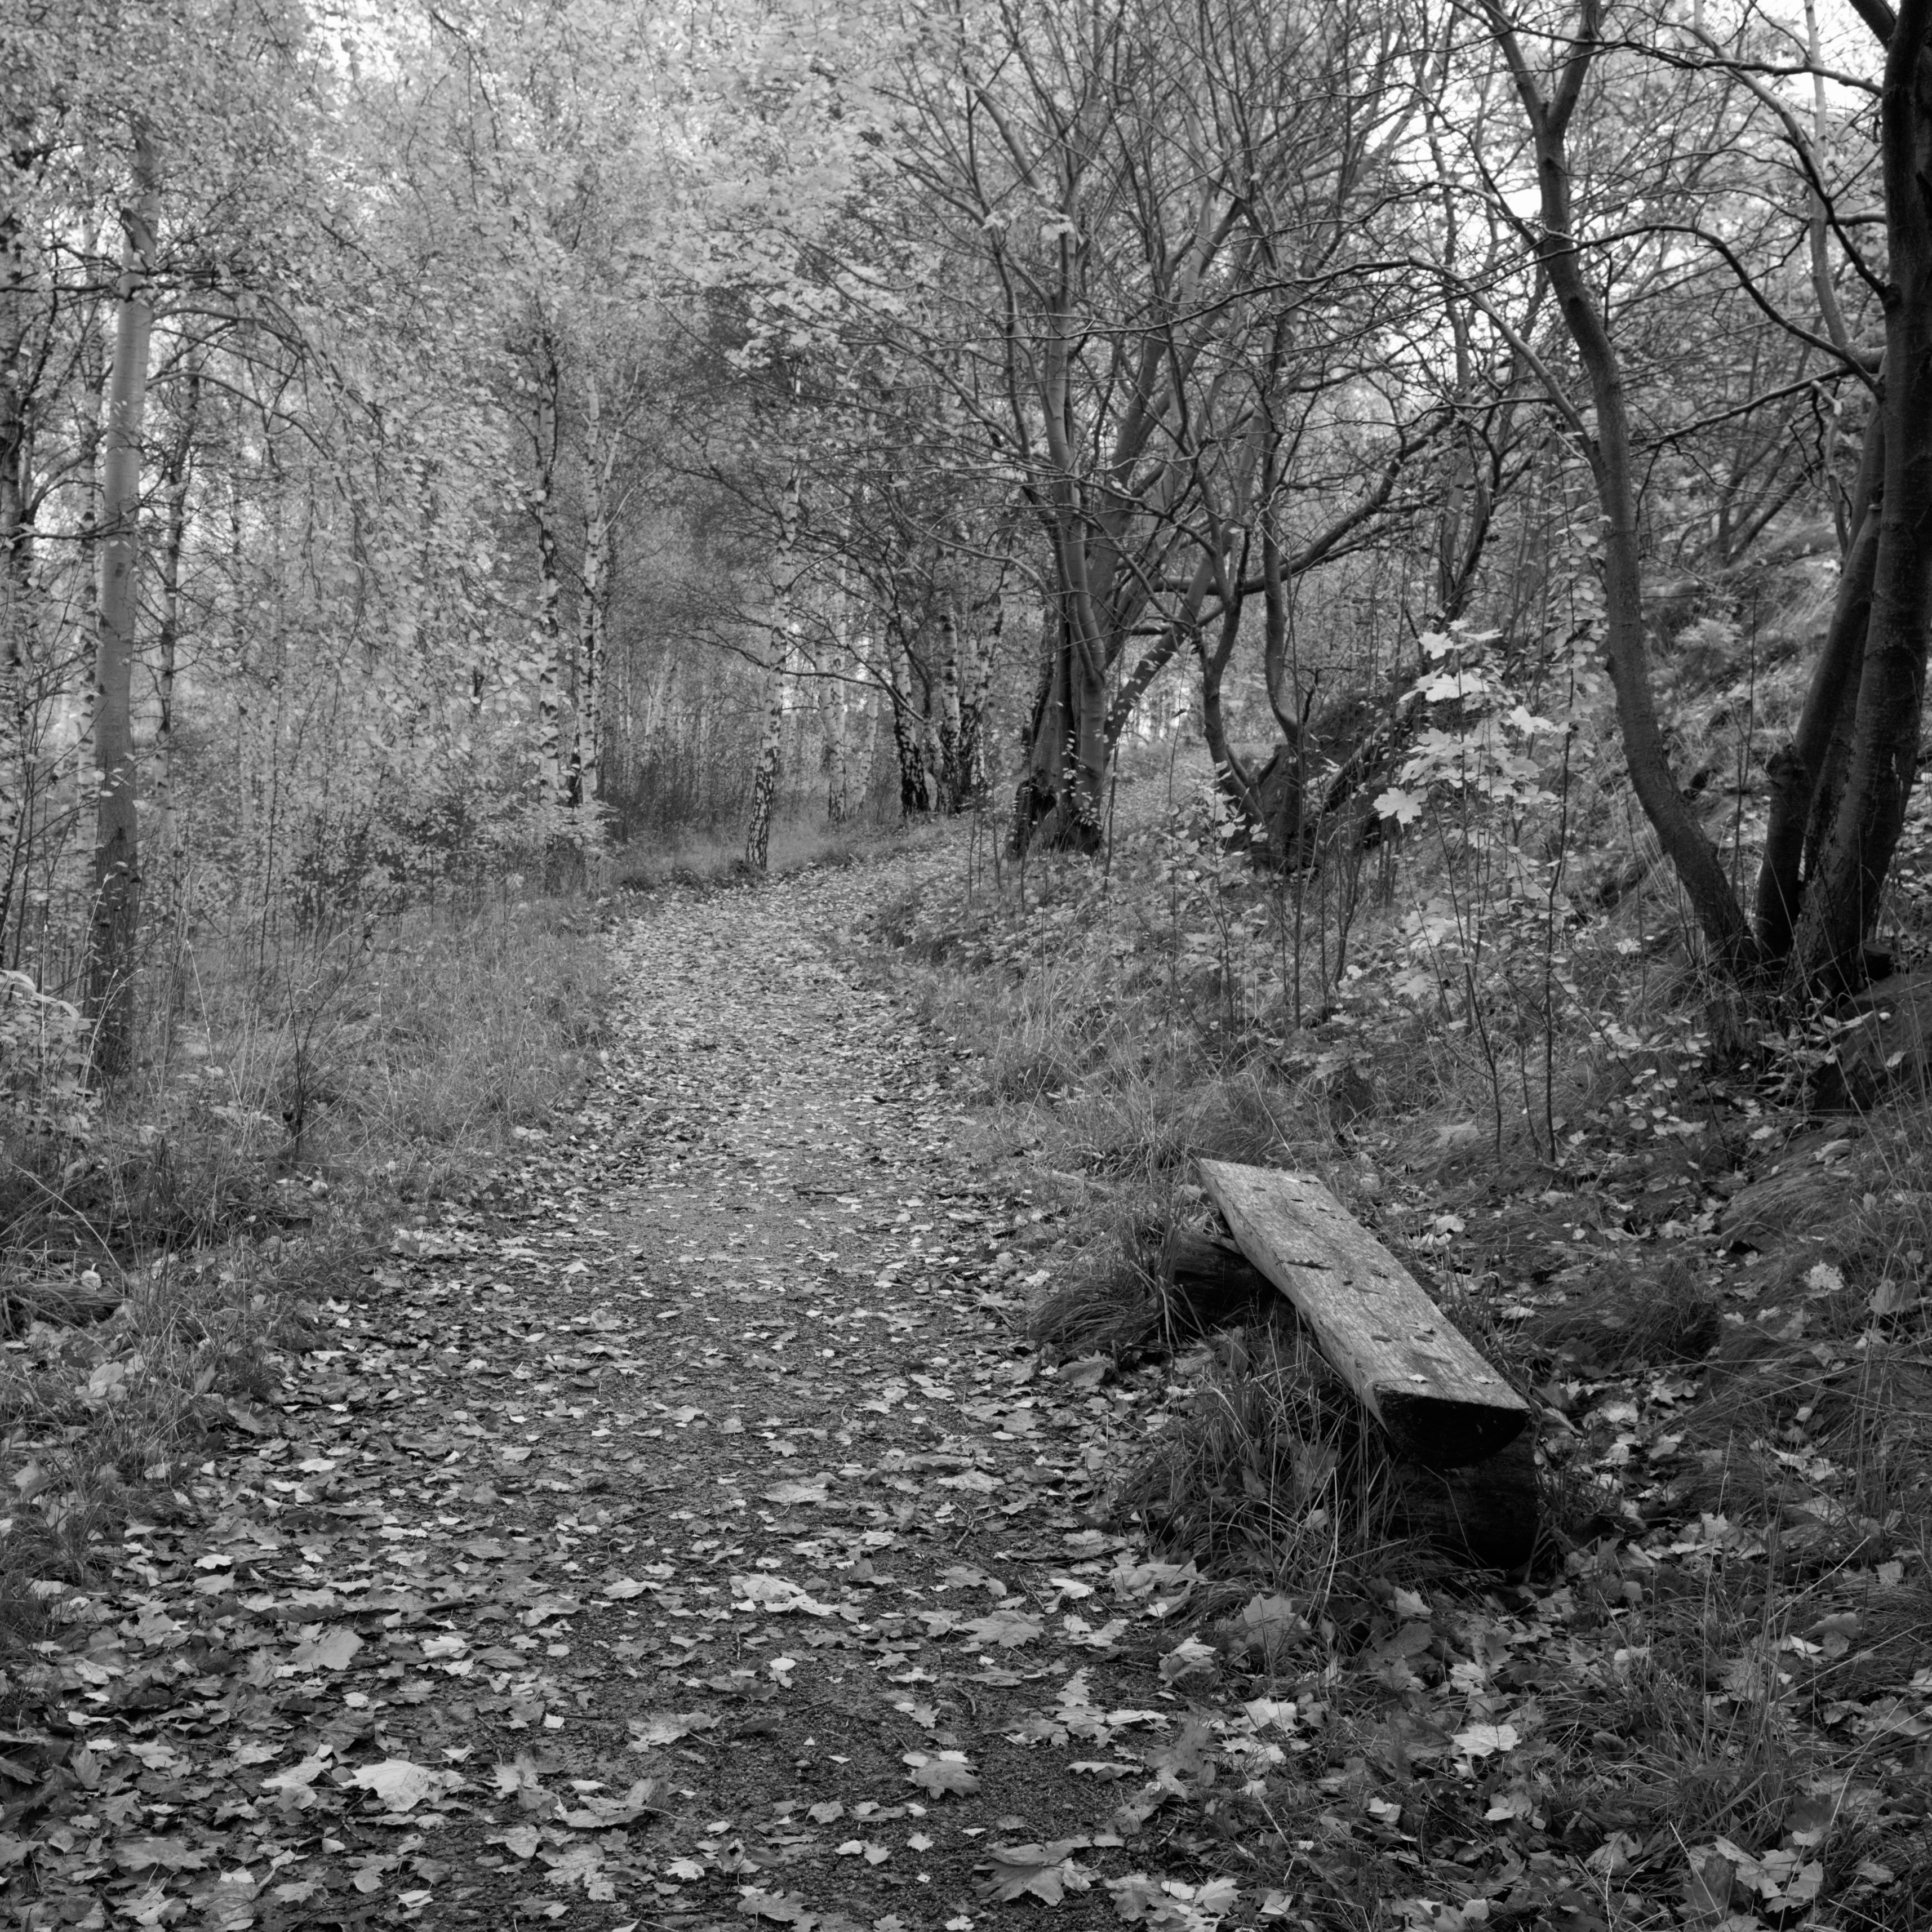 Fall in black and white at Sörhallsberget (Gothenburg, Sweden) with Leica M Monochrom (Leica Summilux-M 35mm f/1.4 ASPH.) by Magnus L Andersson (photography.anderssoneklund.se) at 2012-10-21 09:48:35